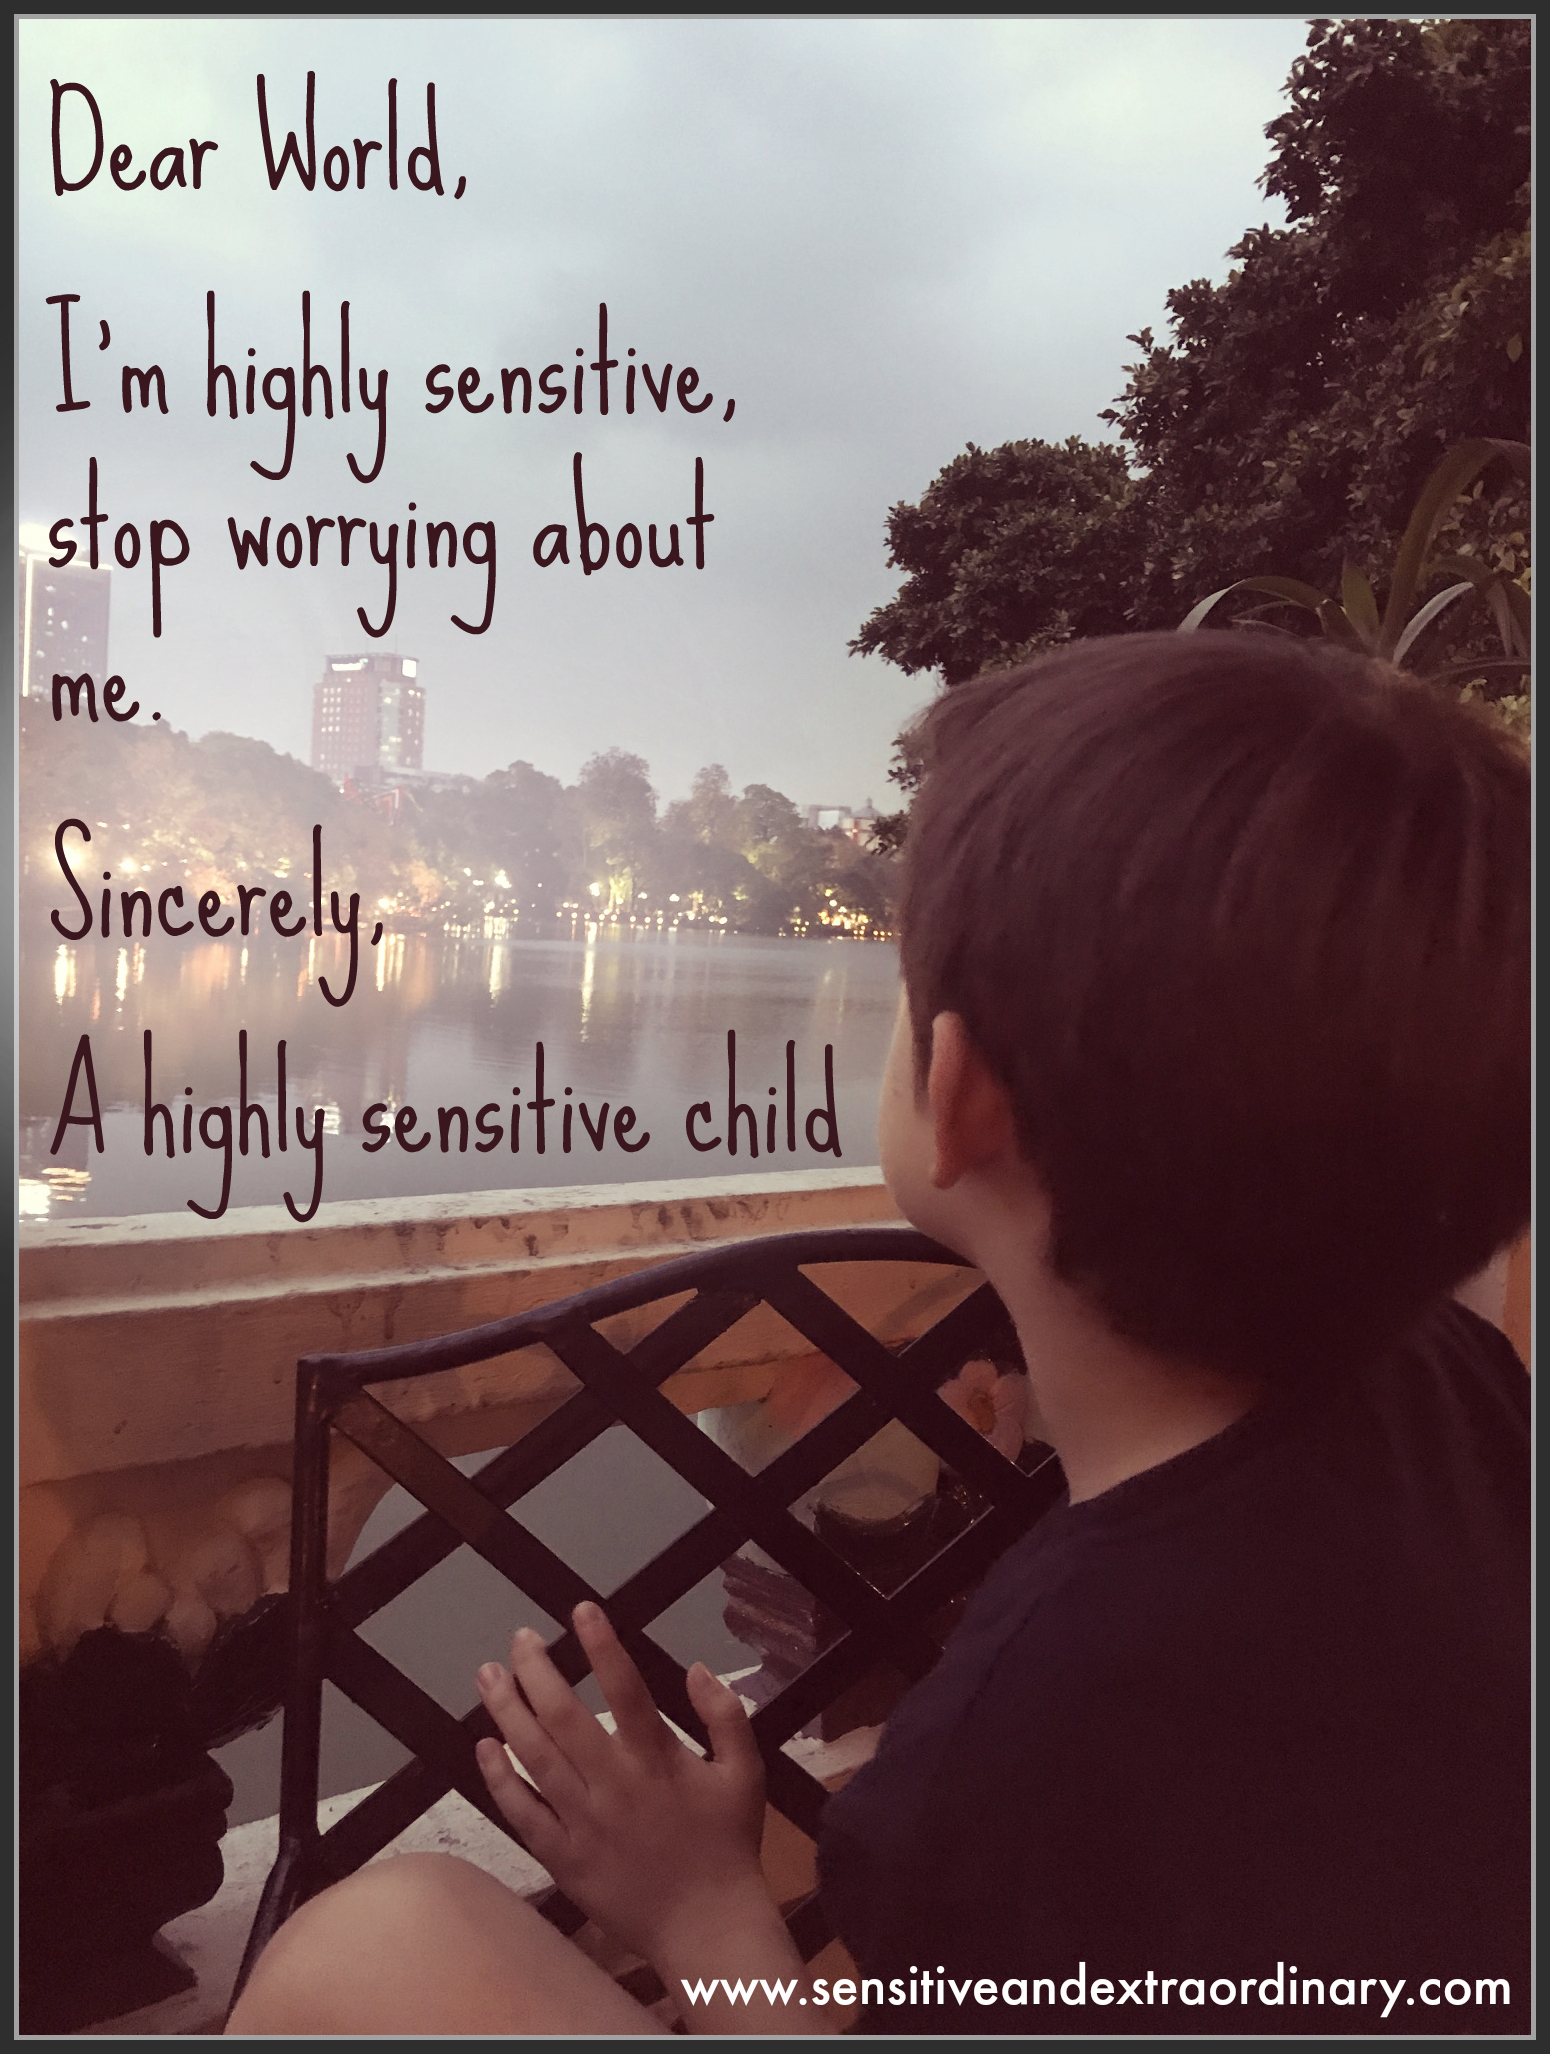 I'm highly sensitive, stop worrying about me